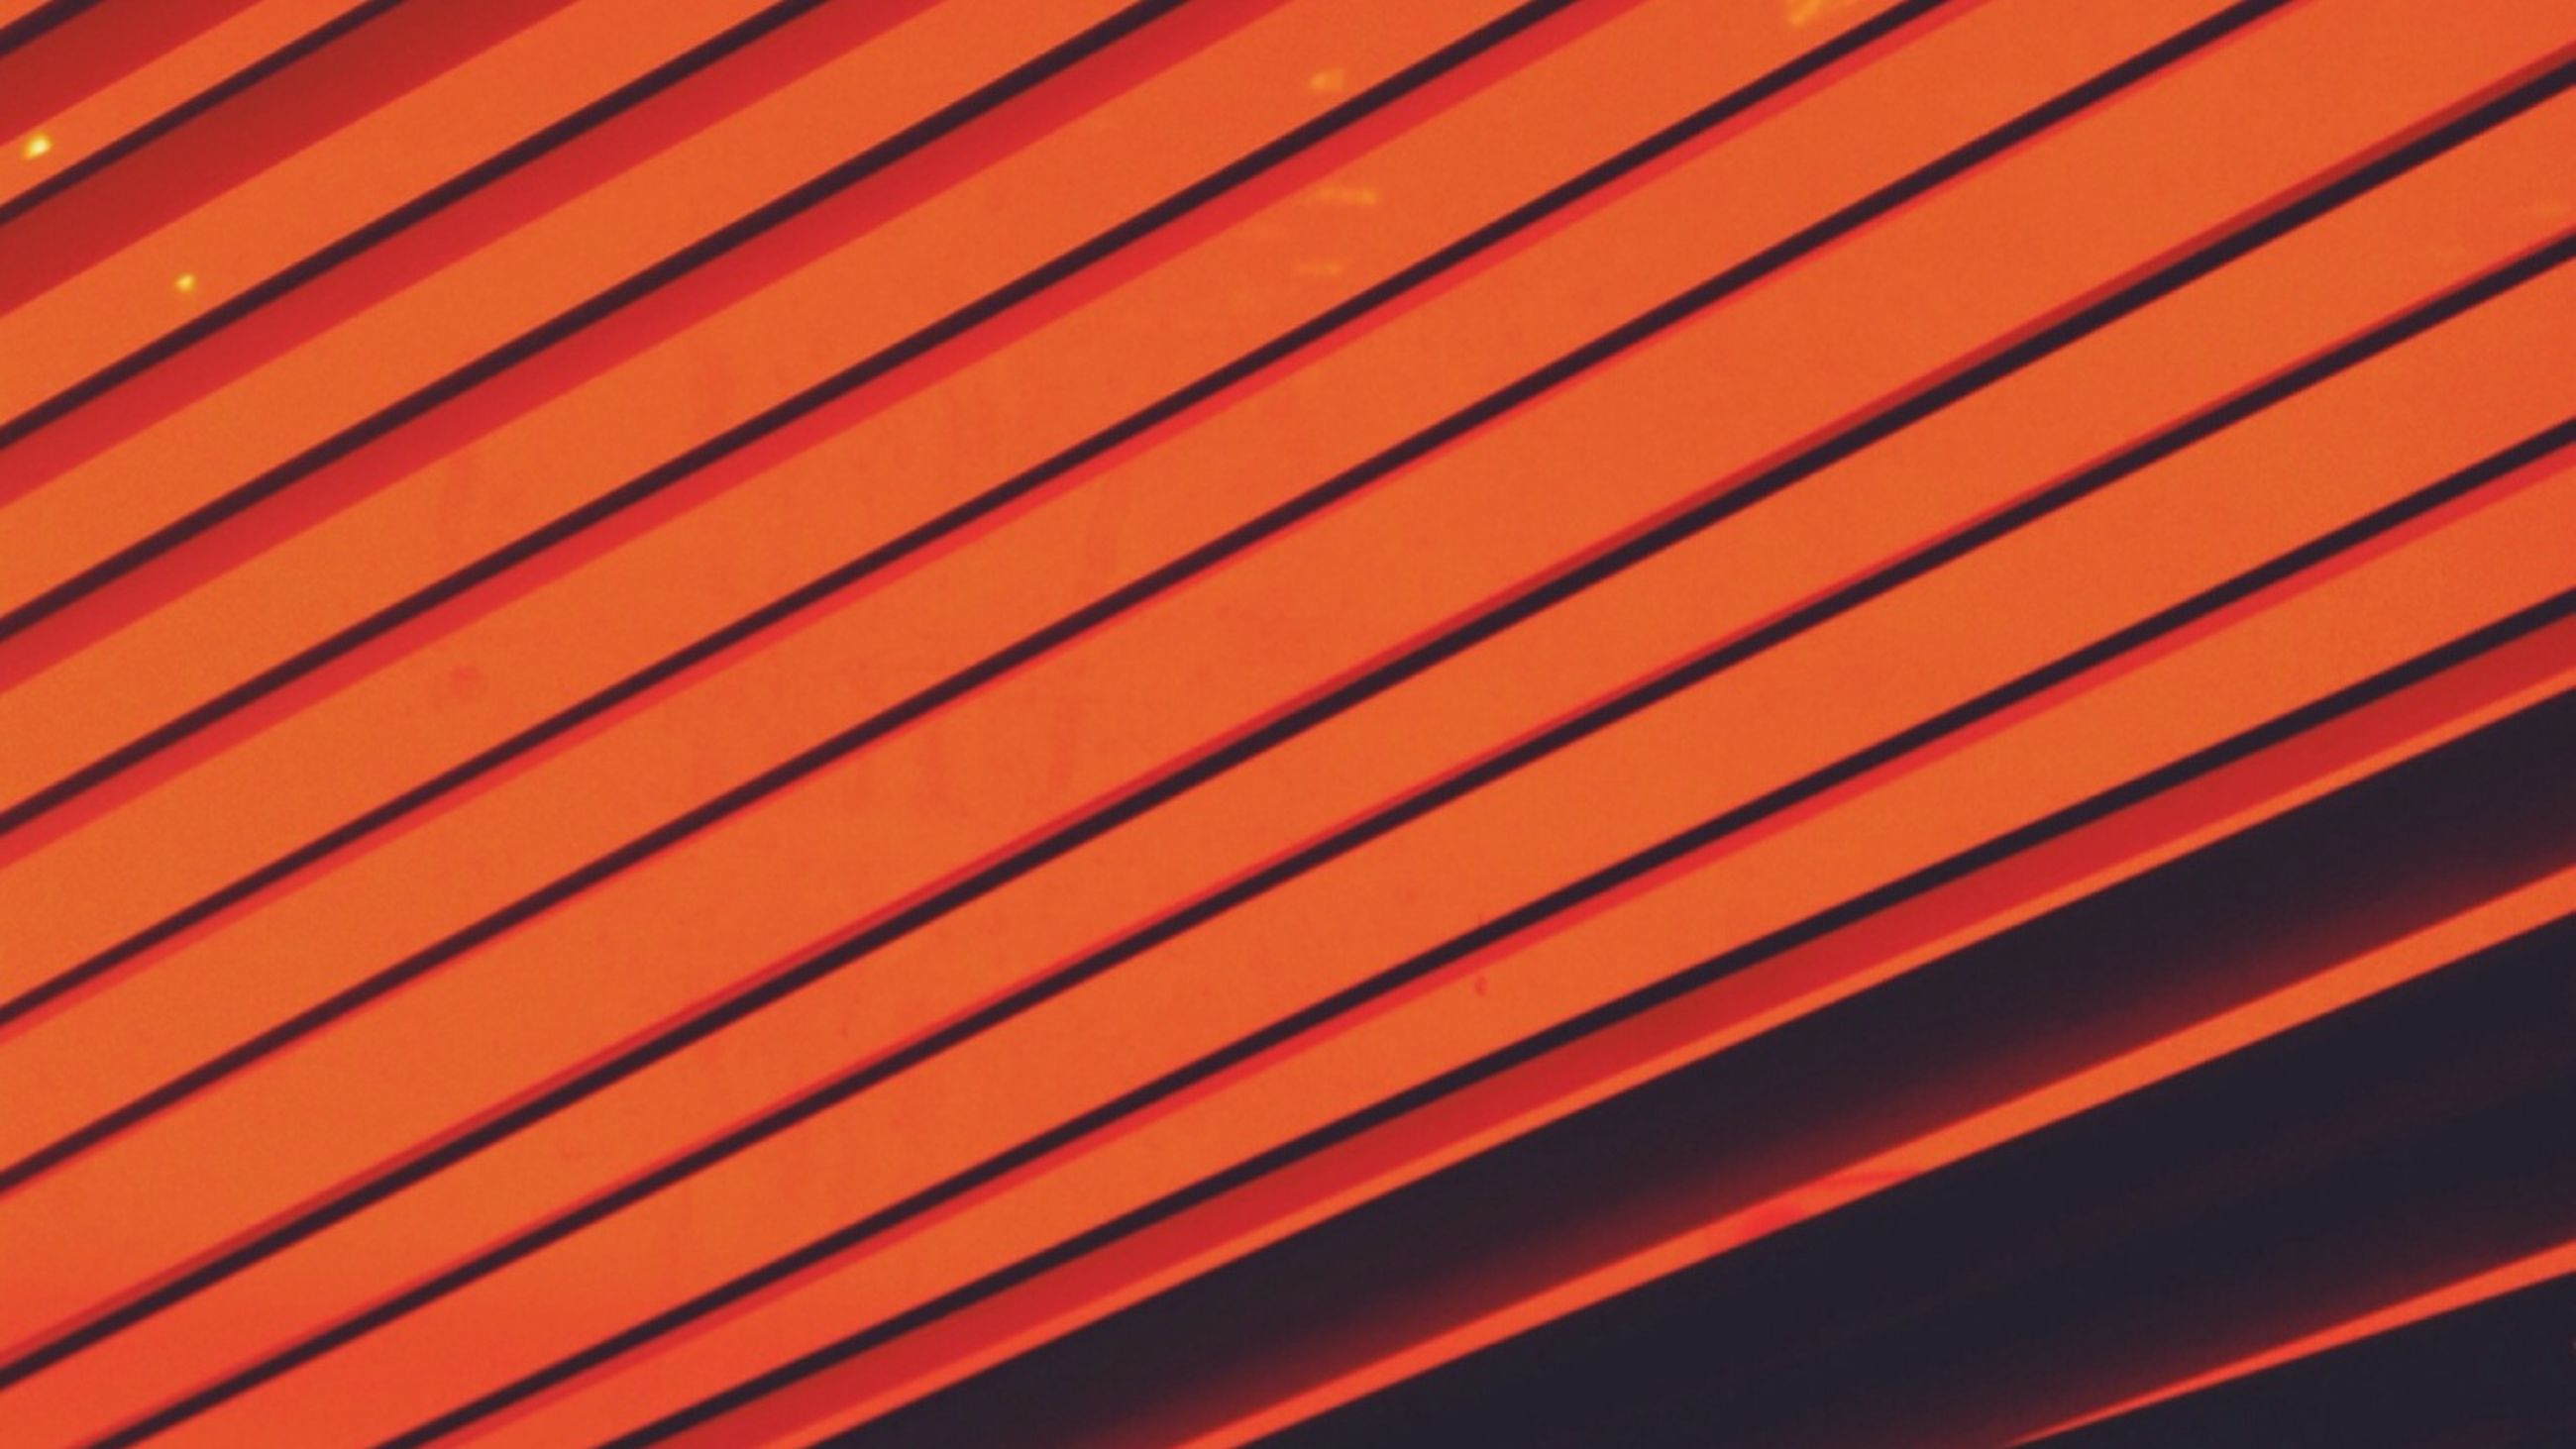 full frame, backgrounds, pattern, orange color, indoors, close-up, repetition, built structure, blinds, textured, abstract, architecture, design, low angle view, detail, metal, no people, red, yellow, window